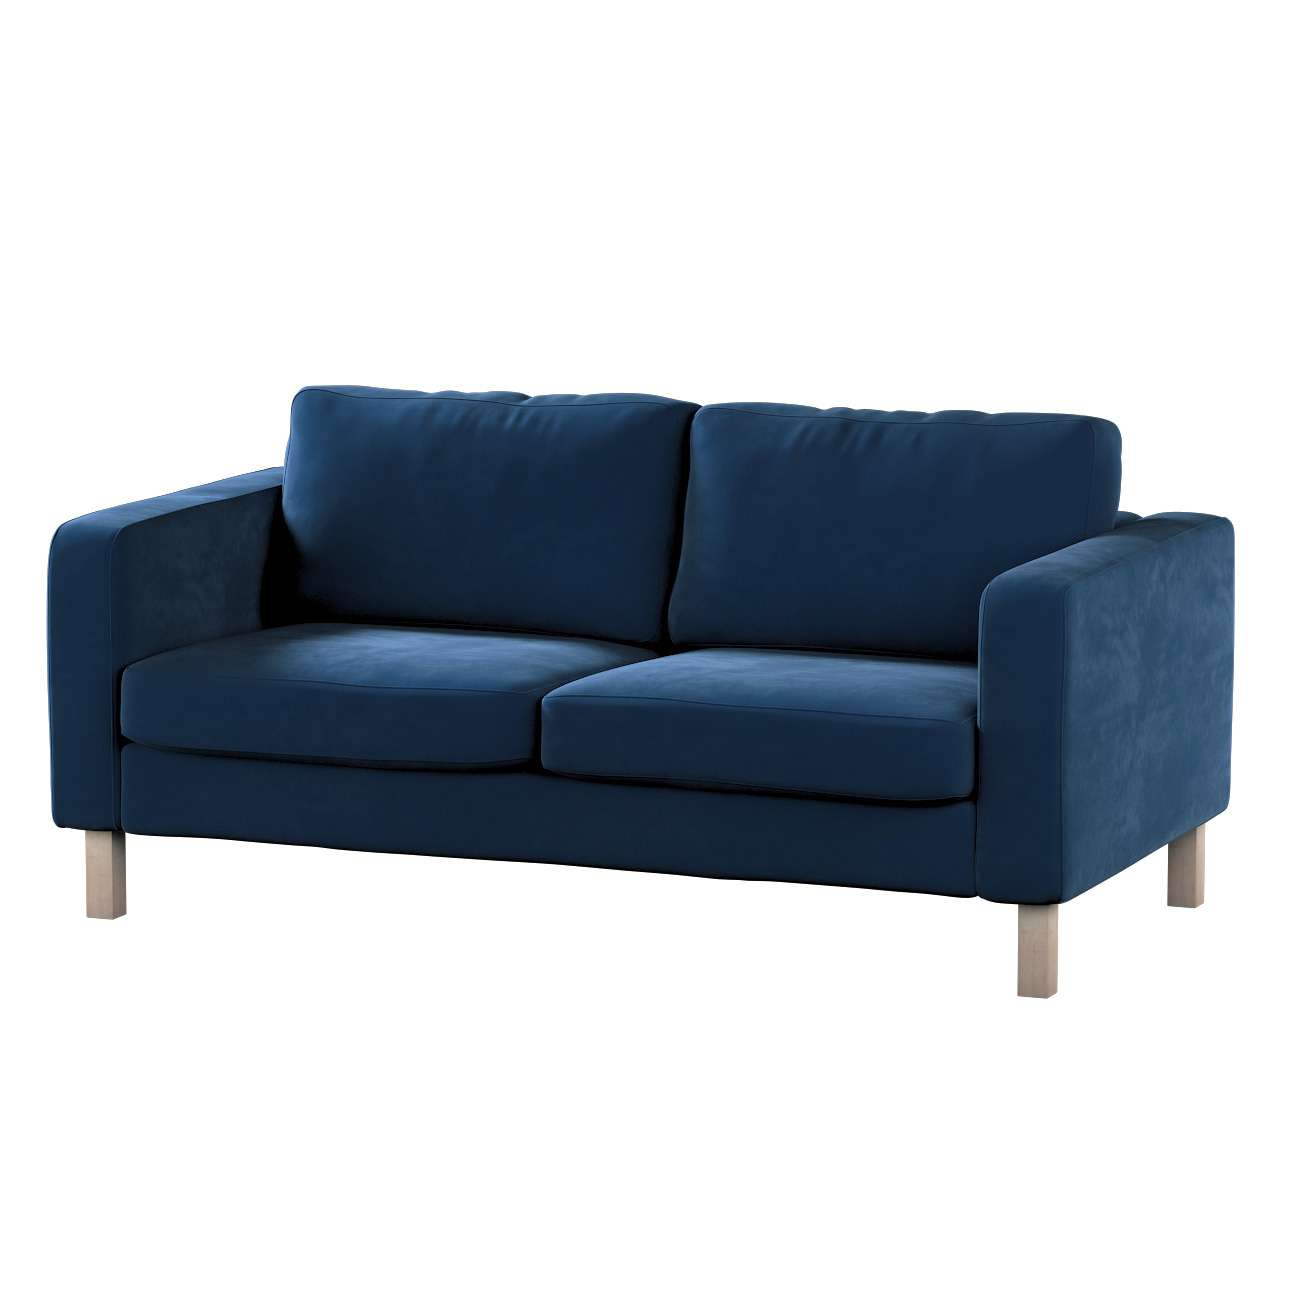 Karlstad 2-seater sofa cover in collection Velvet, fabric: 704-29